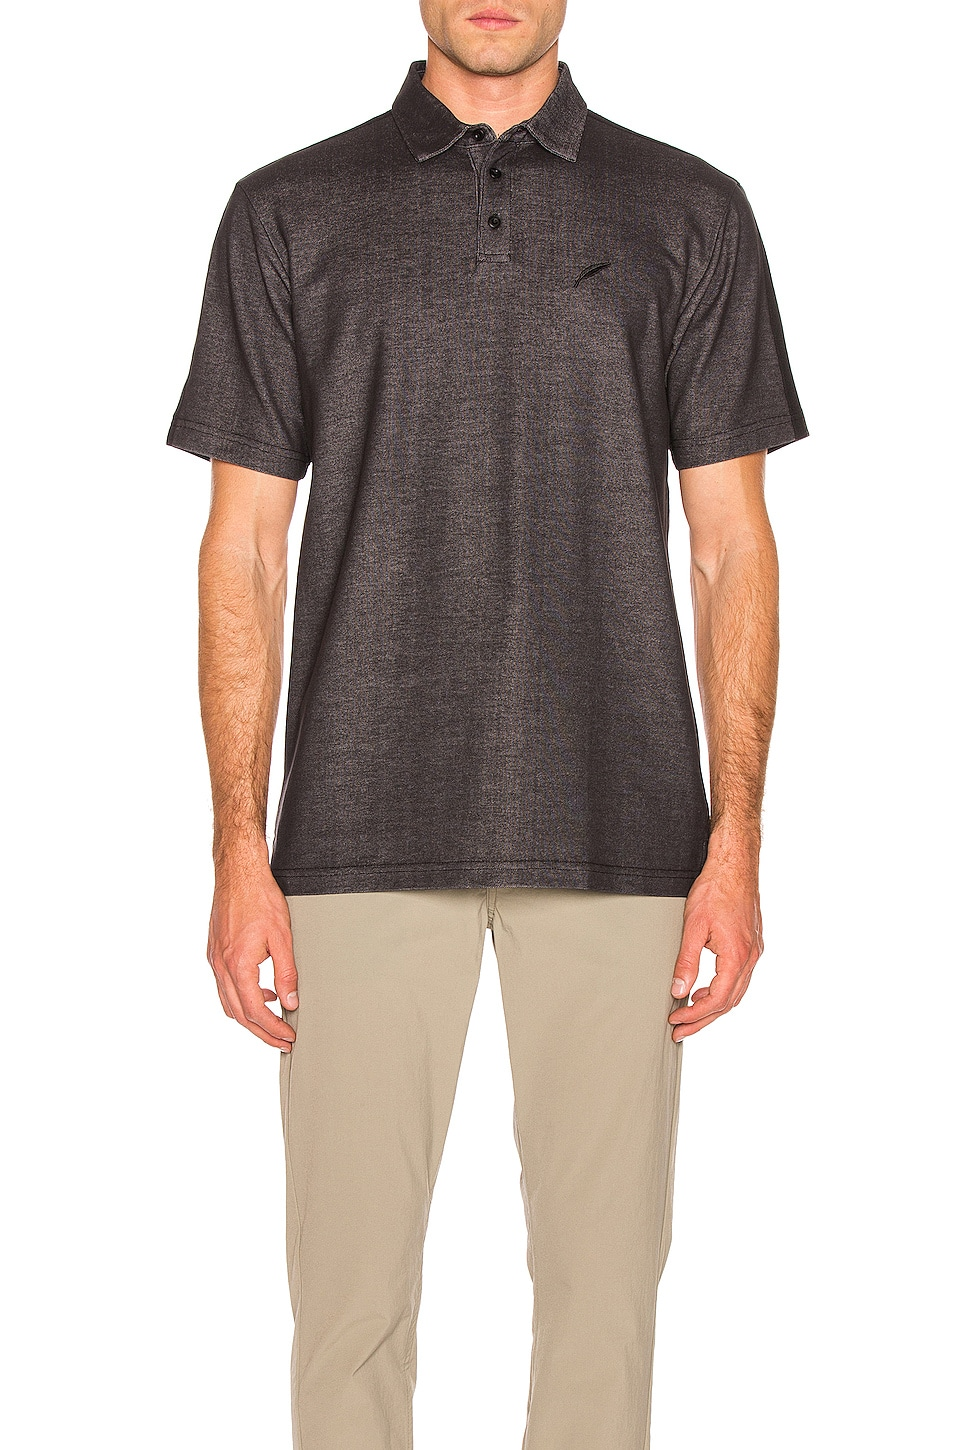 Publish Polo Tee in Charcoal